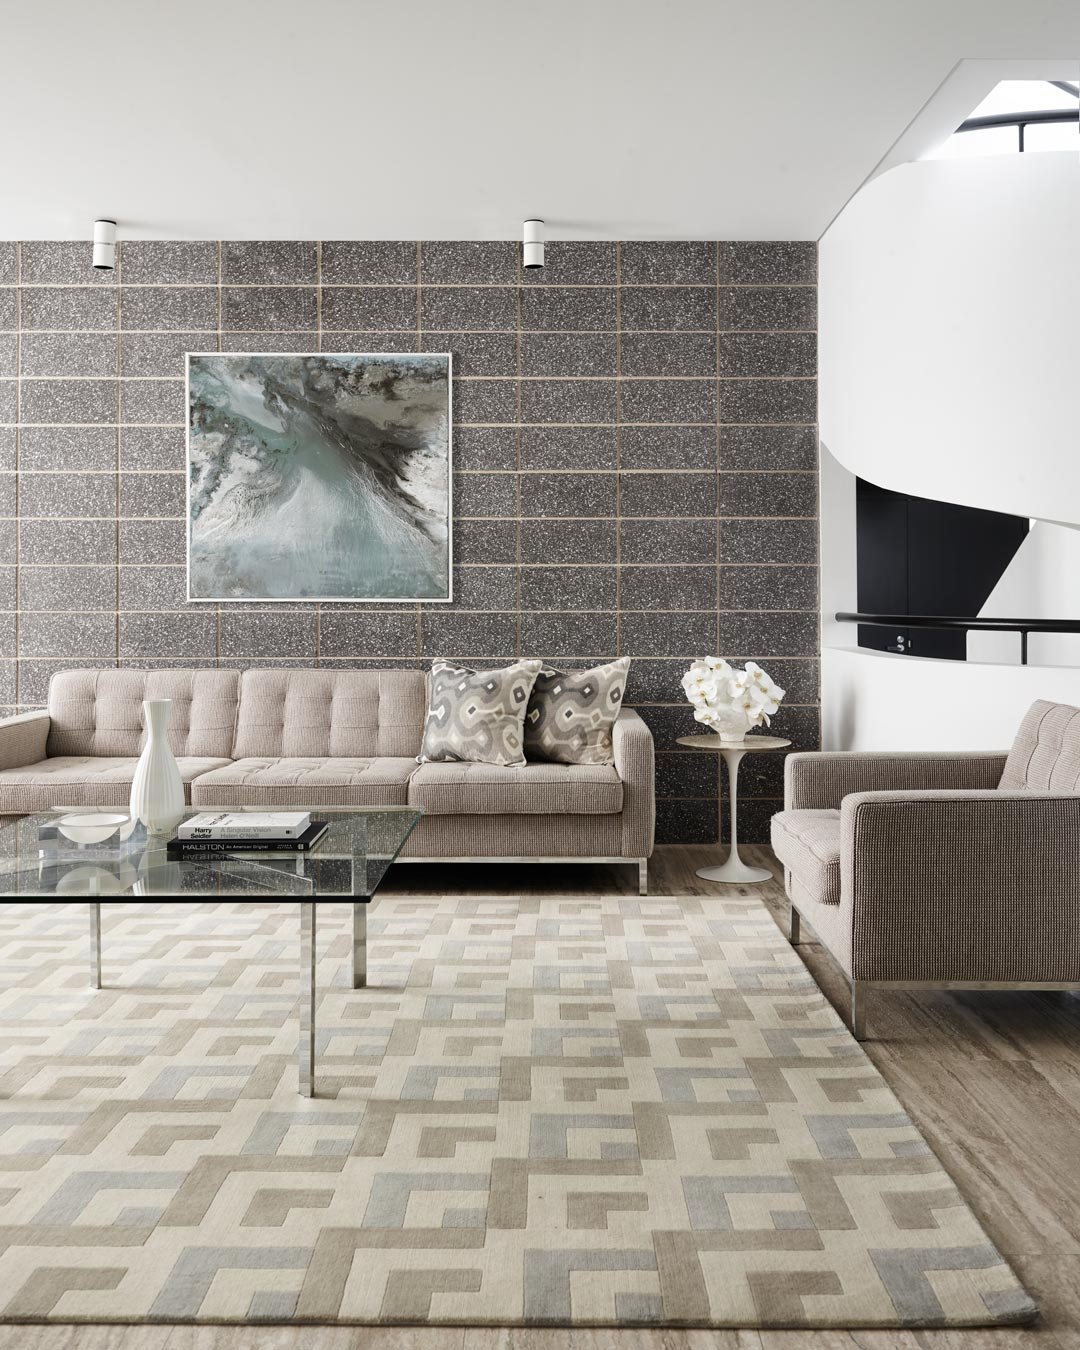 location living room shot of los angeles rug by greg natale